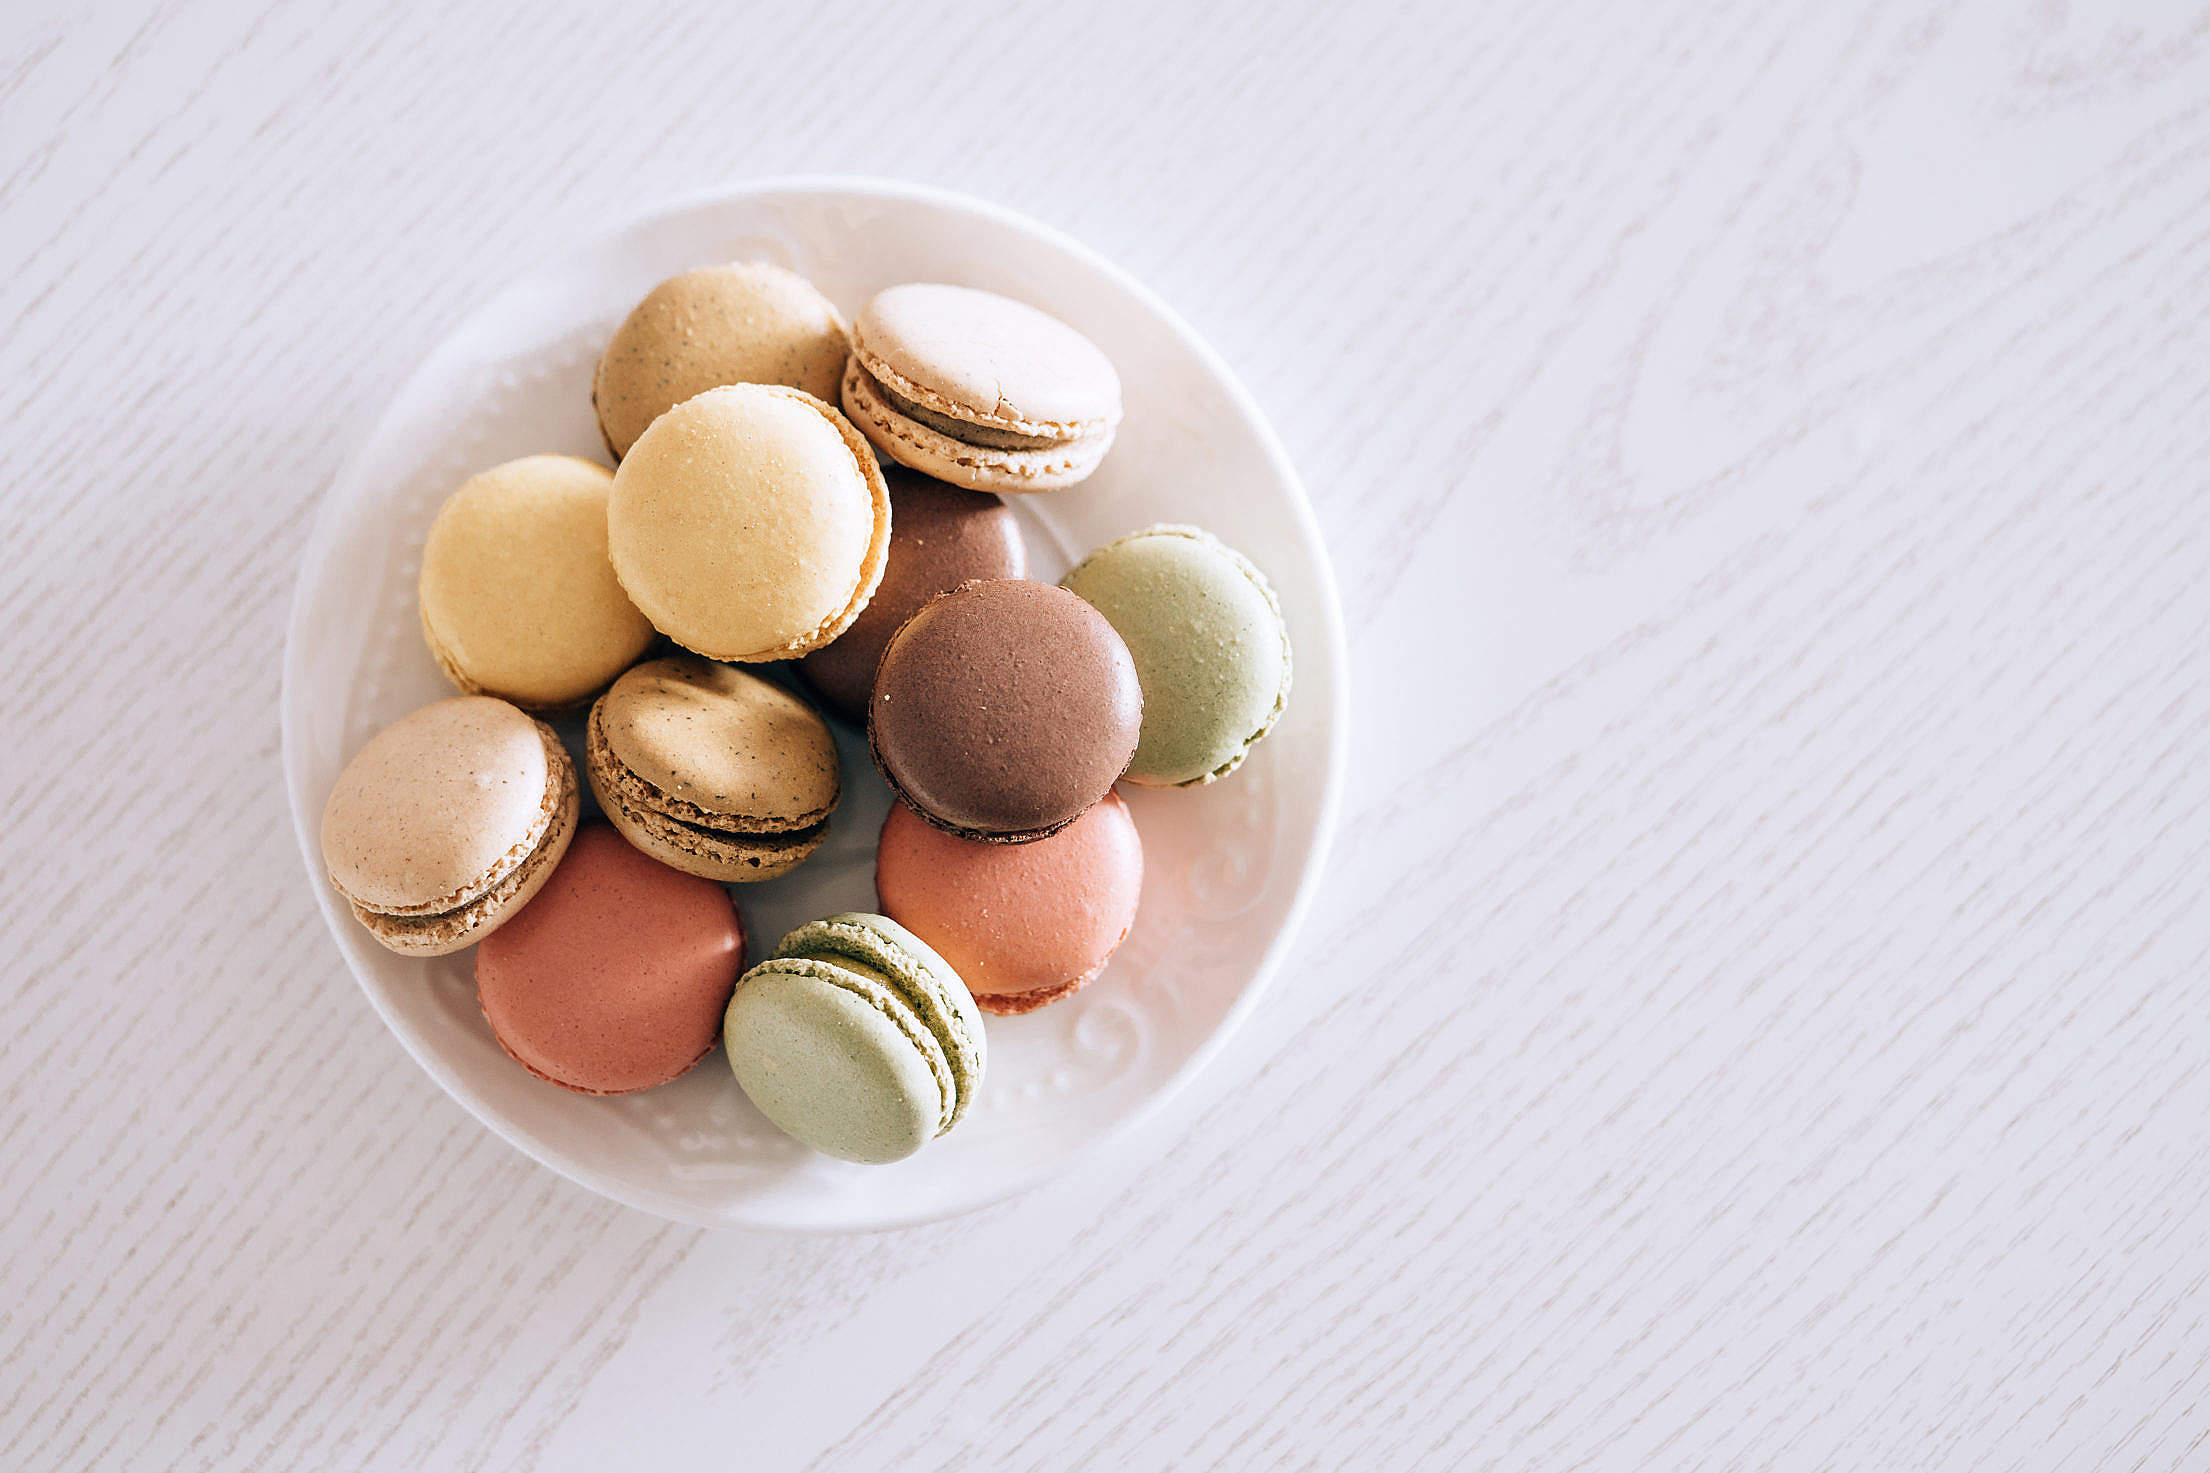 Macarons in Pastel Colors on The White Wood Free Stock Photo